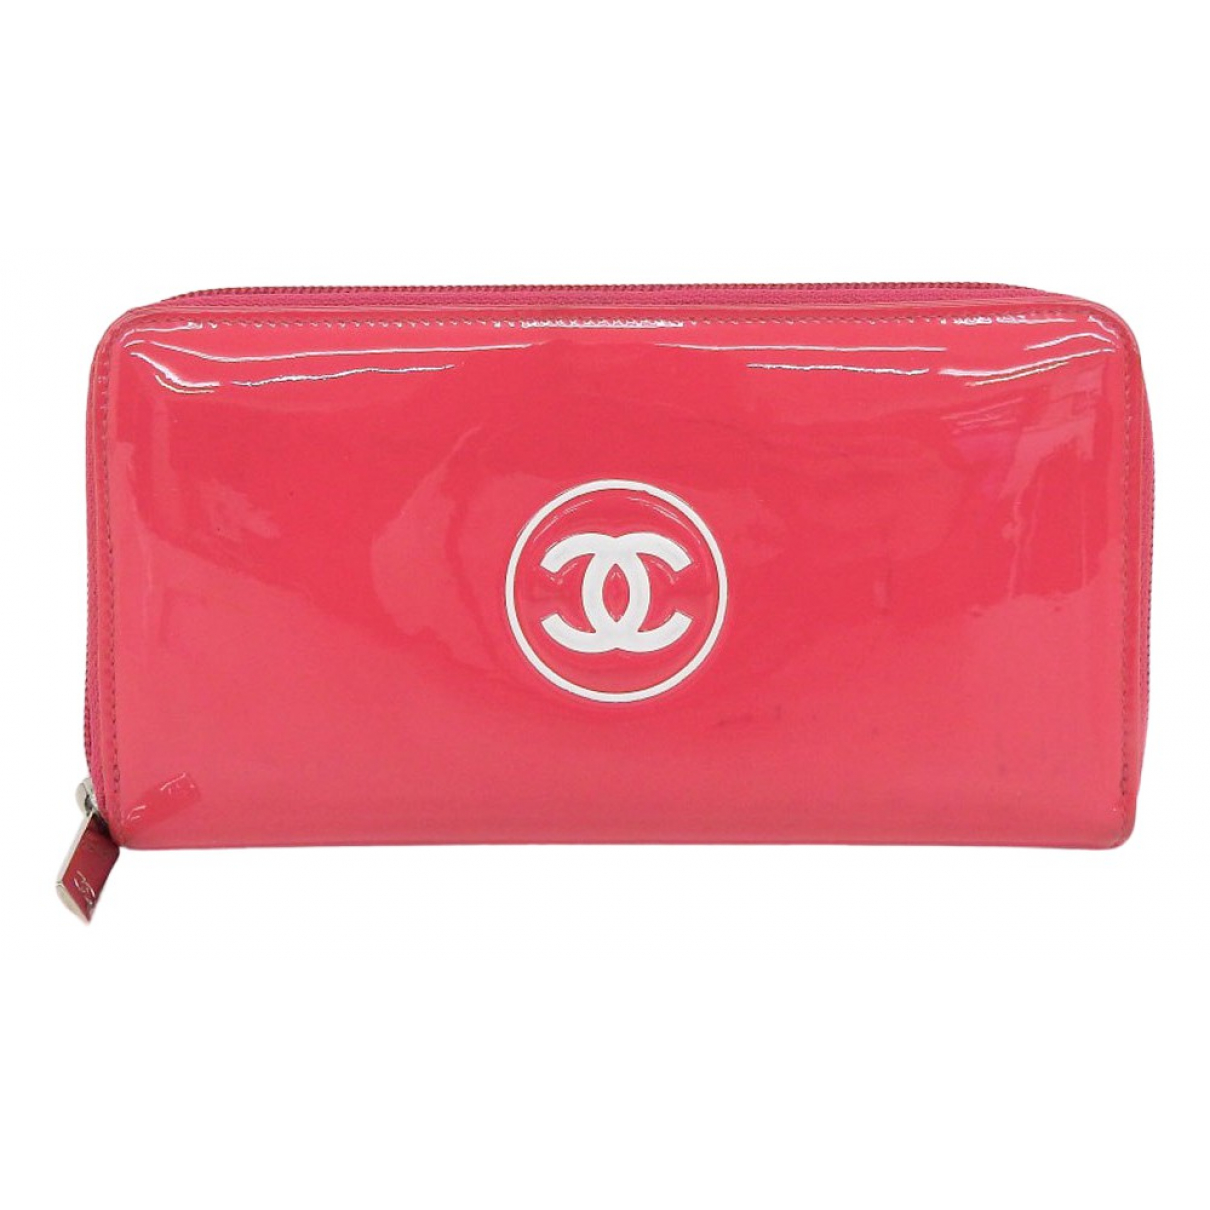 Chanel \N Pink Patent leather wallet for Women \N